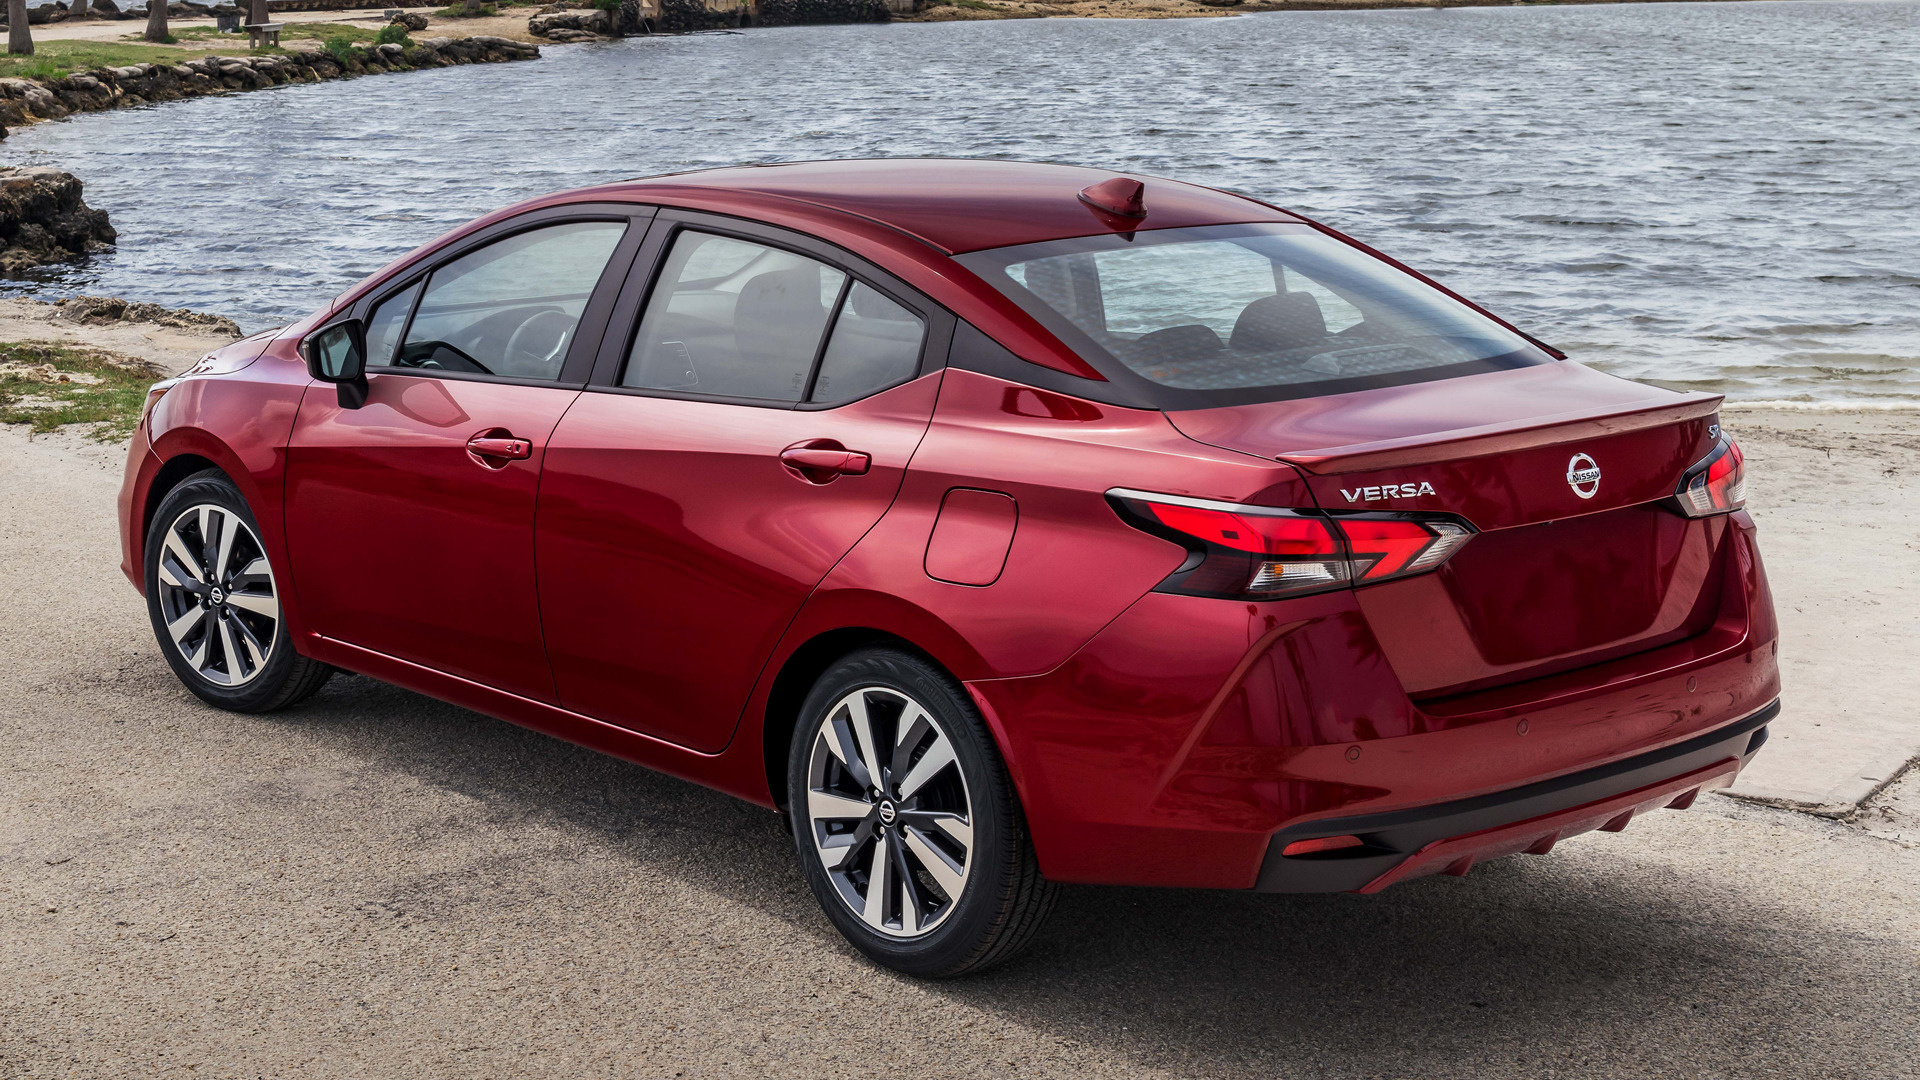 2020 Nissan Versa - Wallpapers and HD Images | Car Pixel